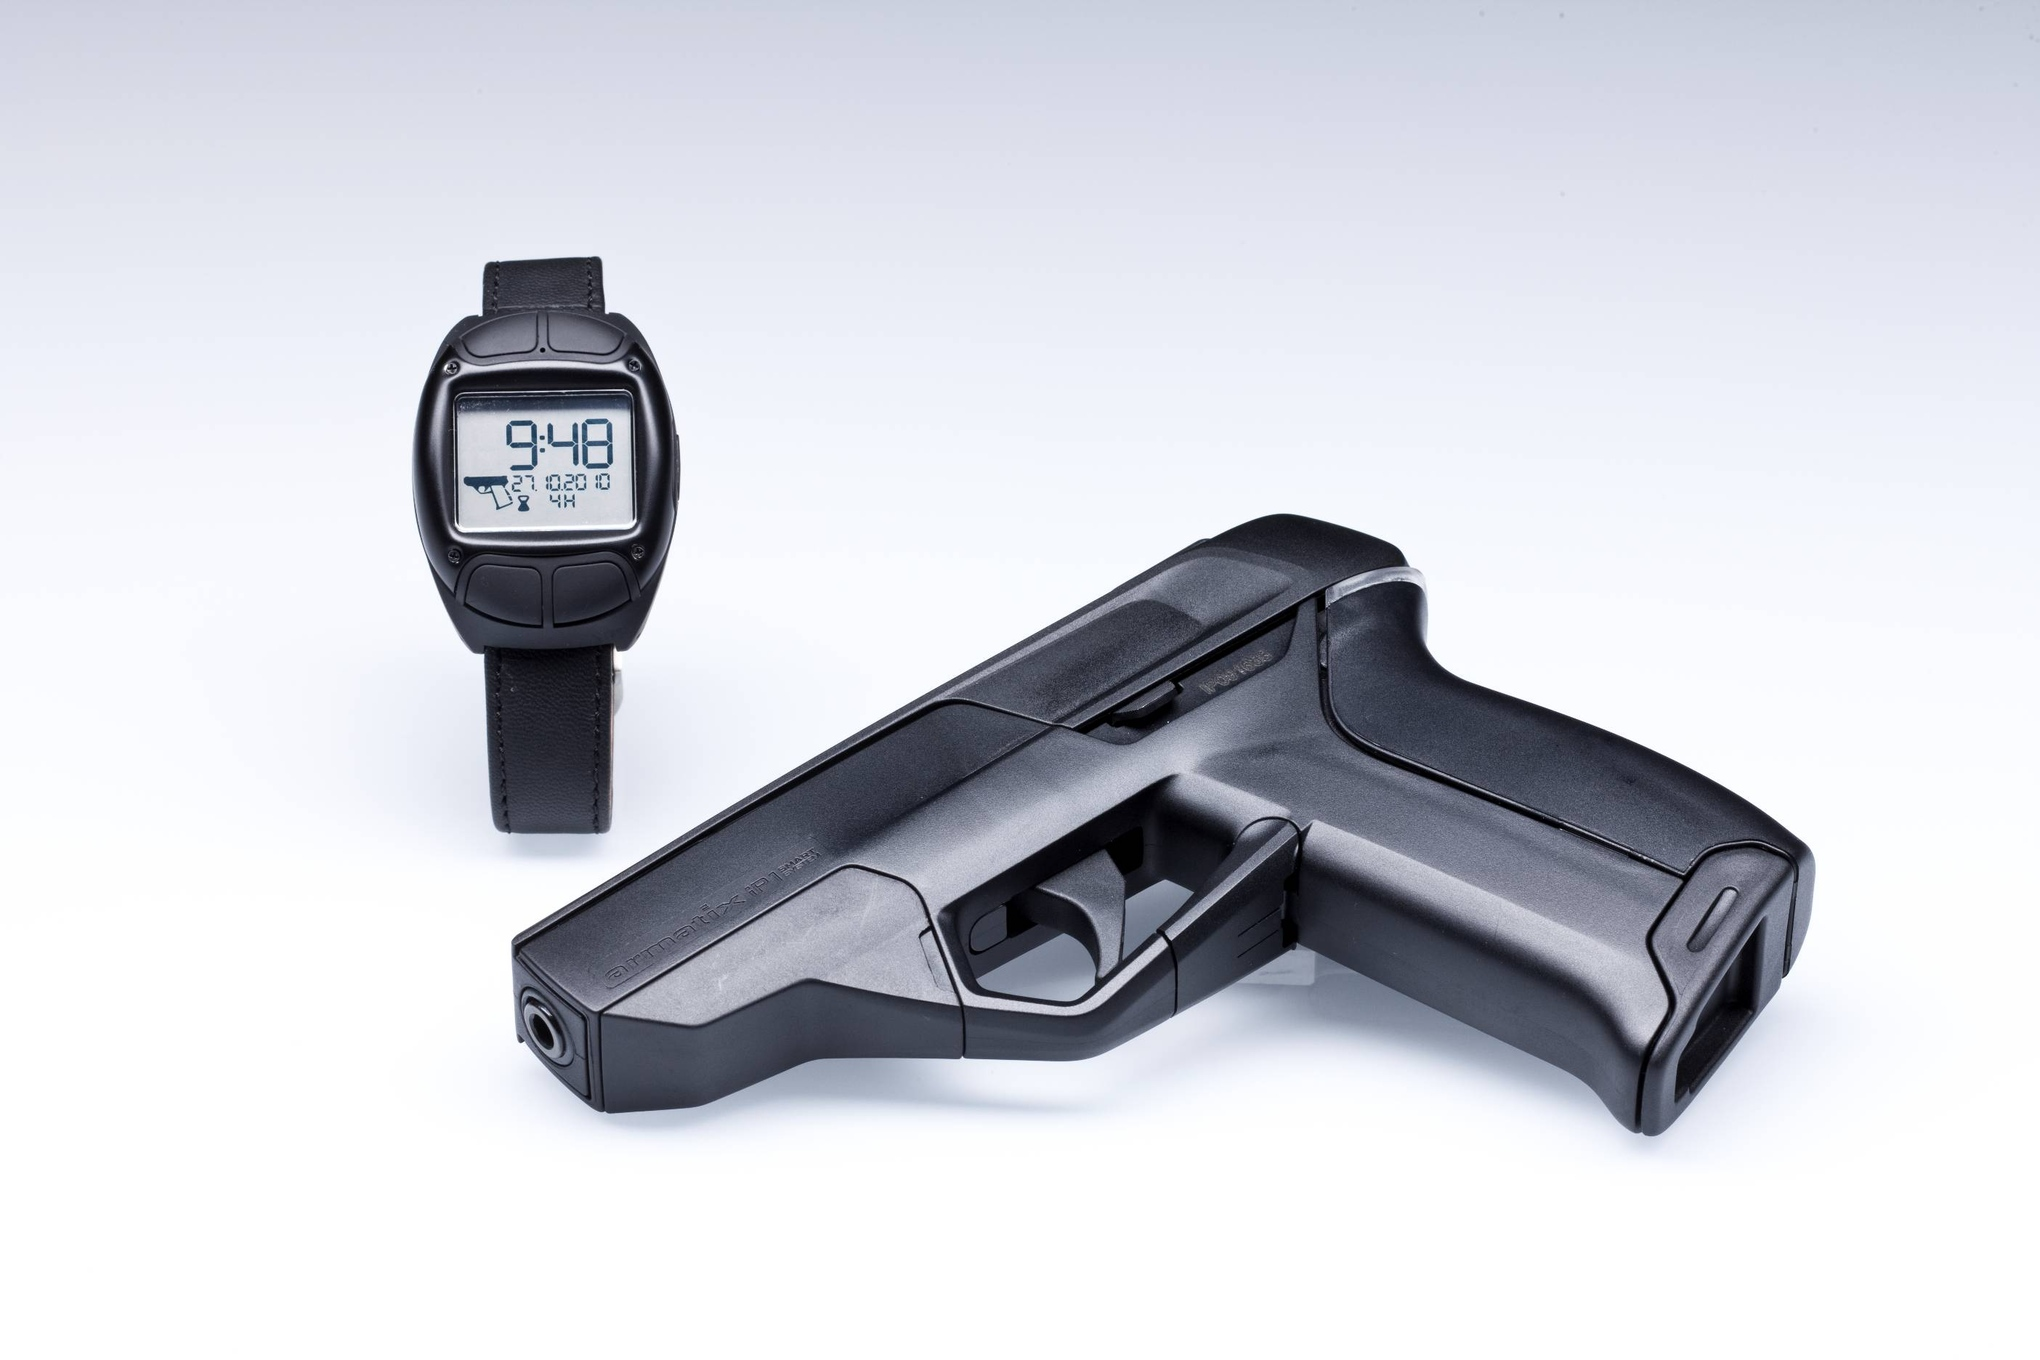 Armatix-ip1-smart-gun-3